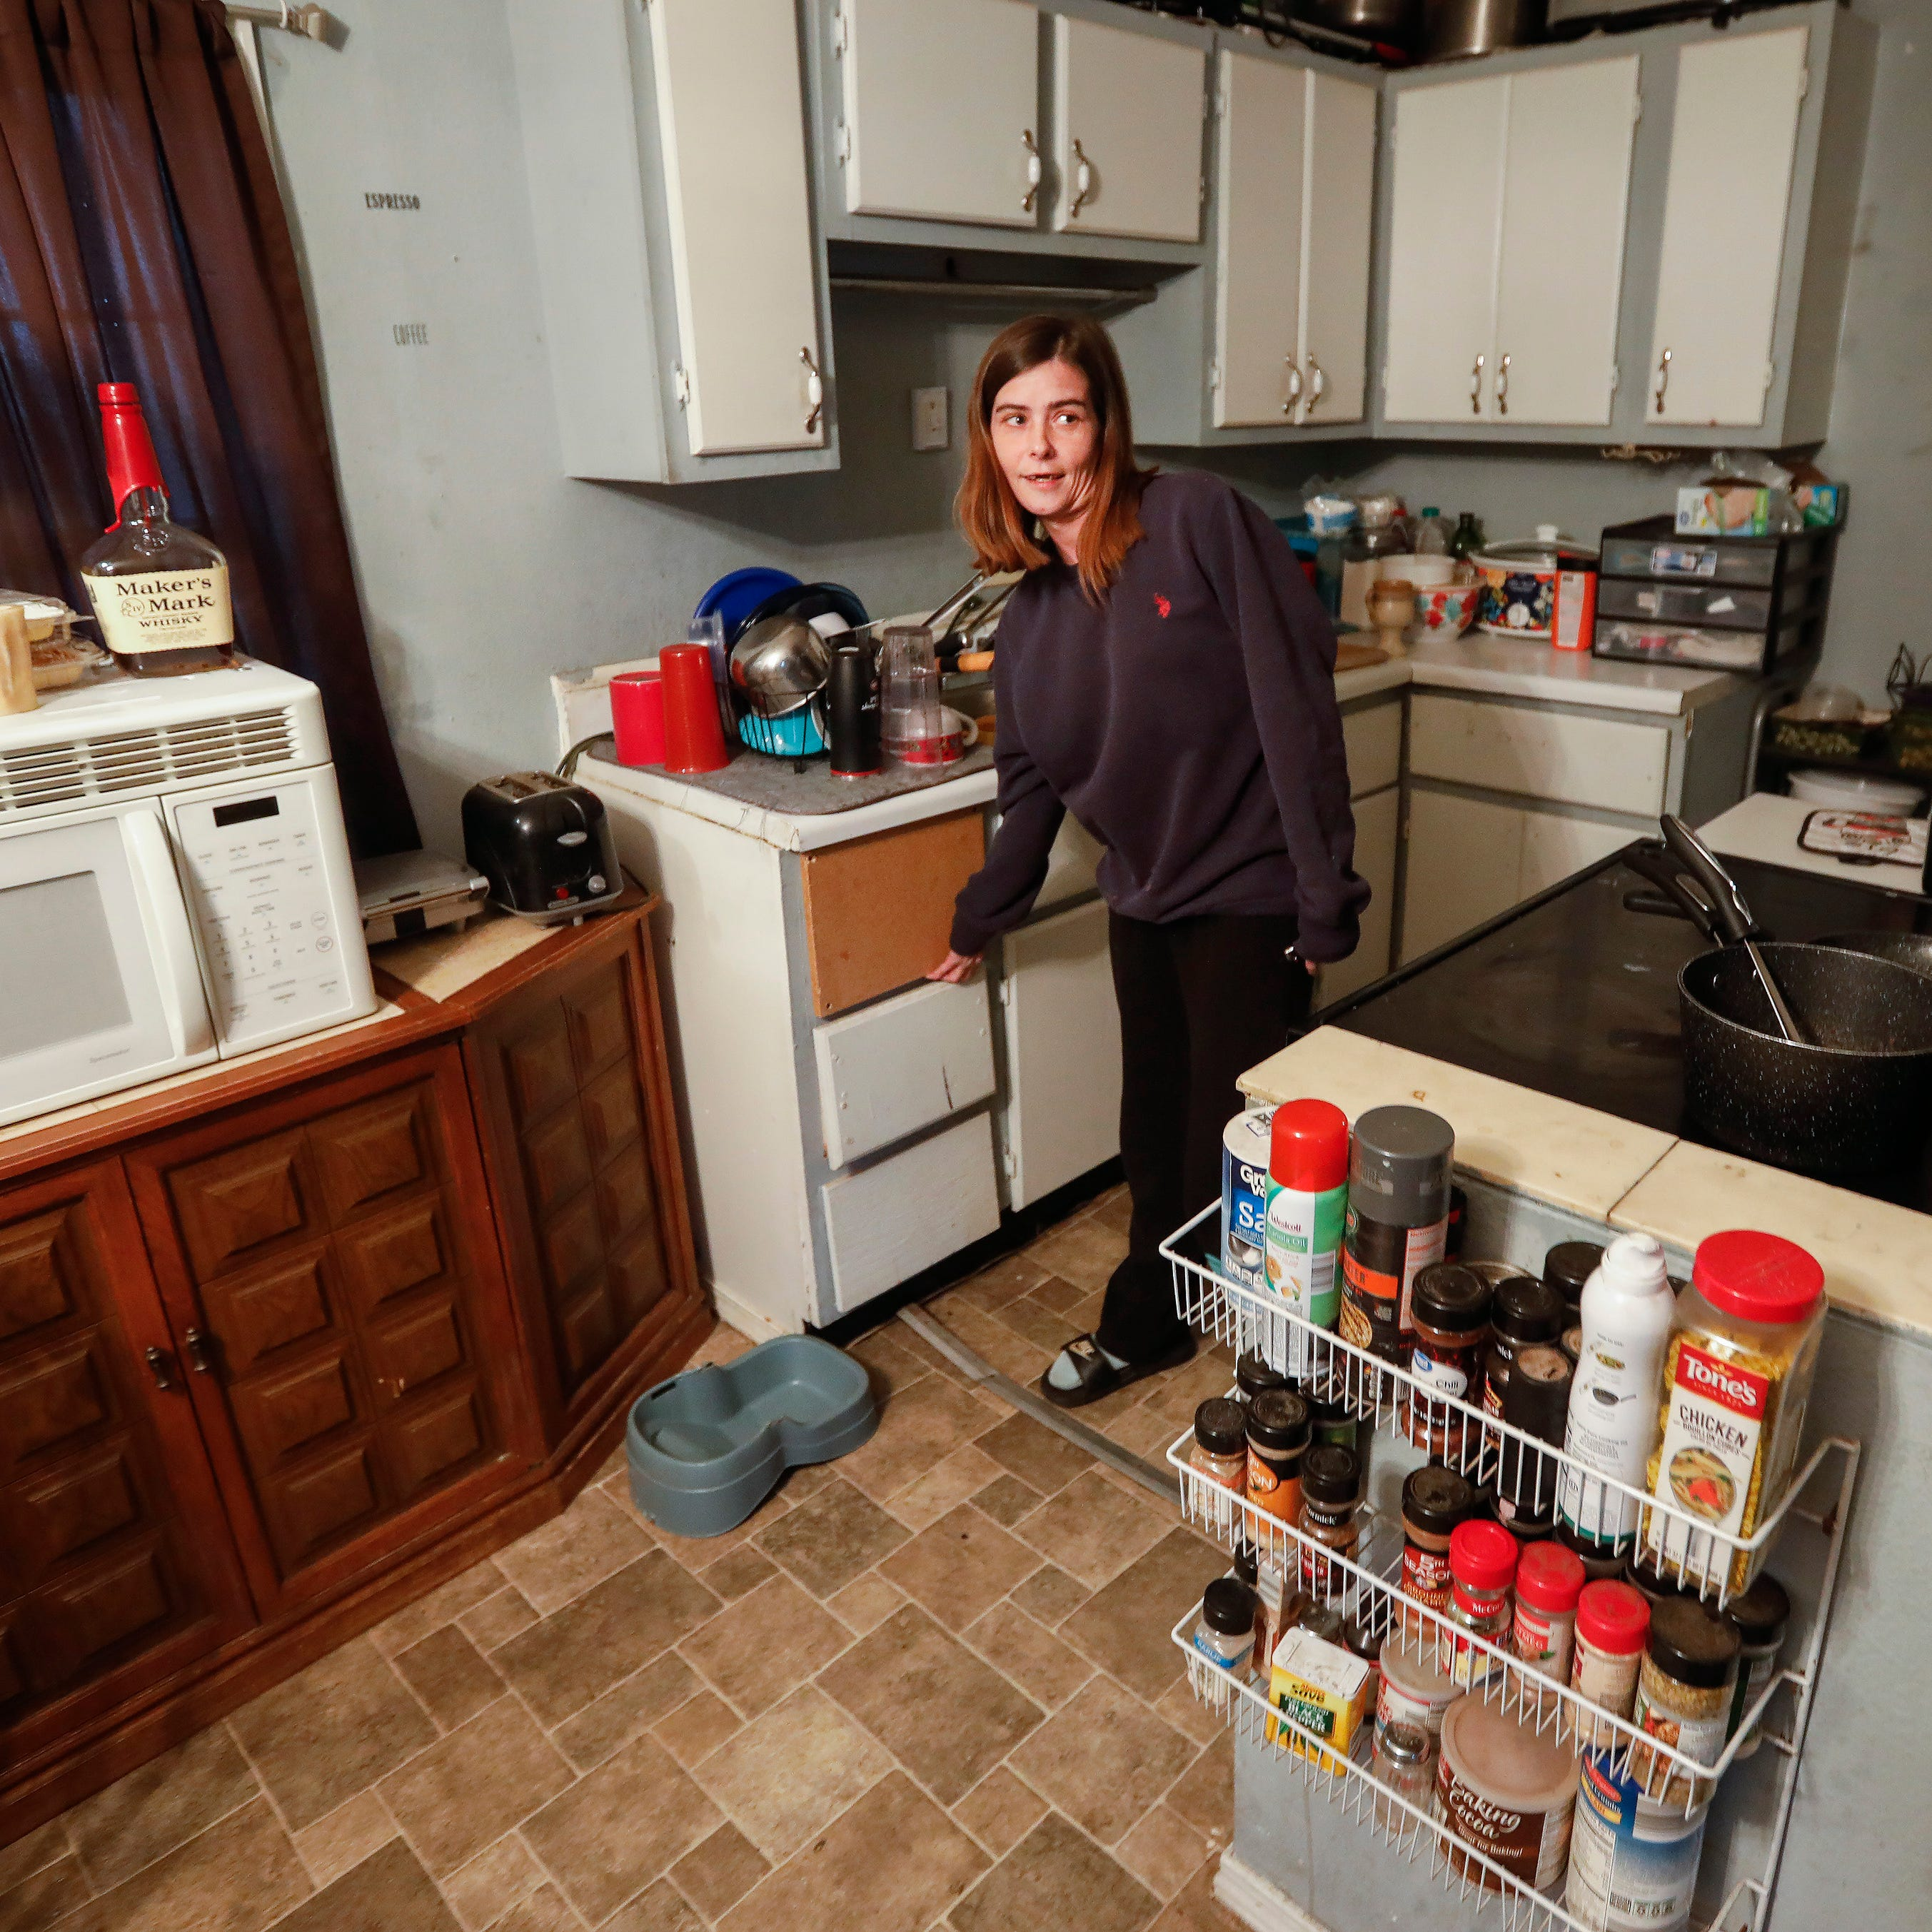 Tenants left in limbo as 417 Rentals properties get auctioned off